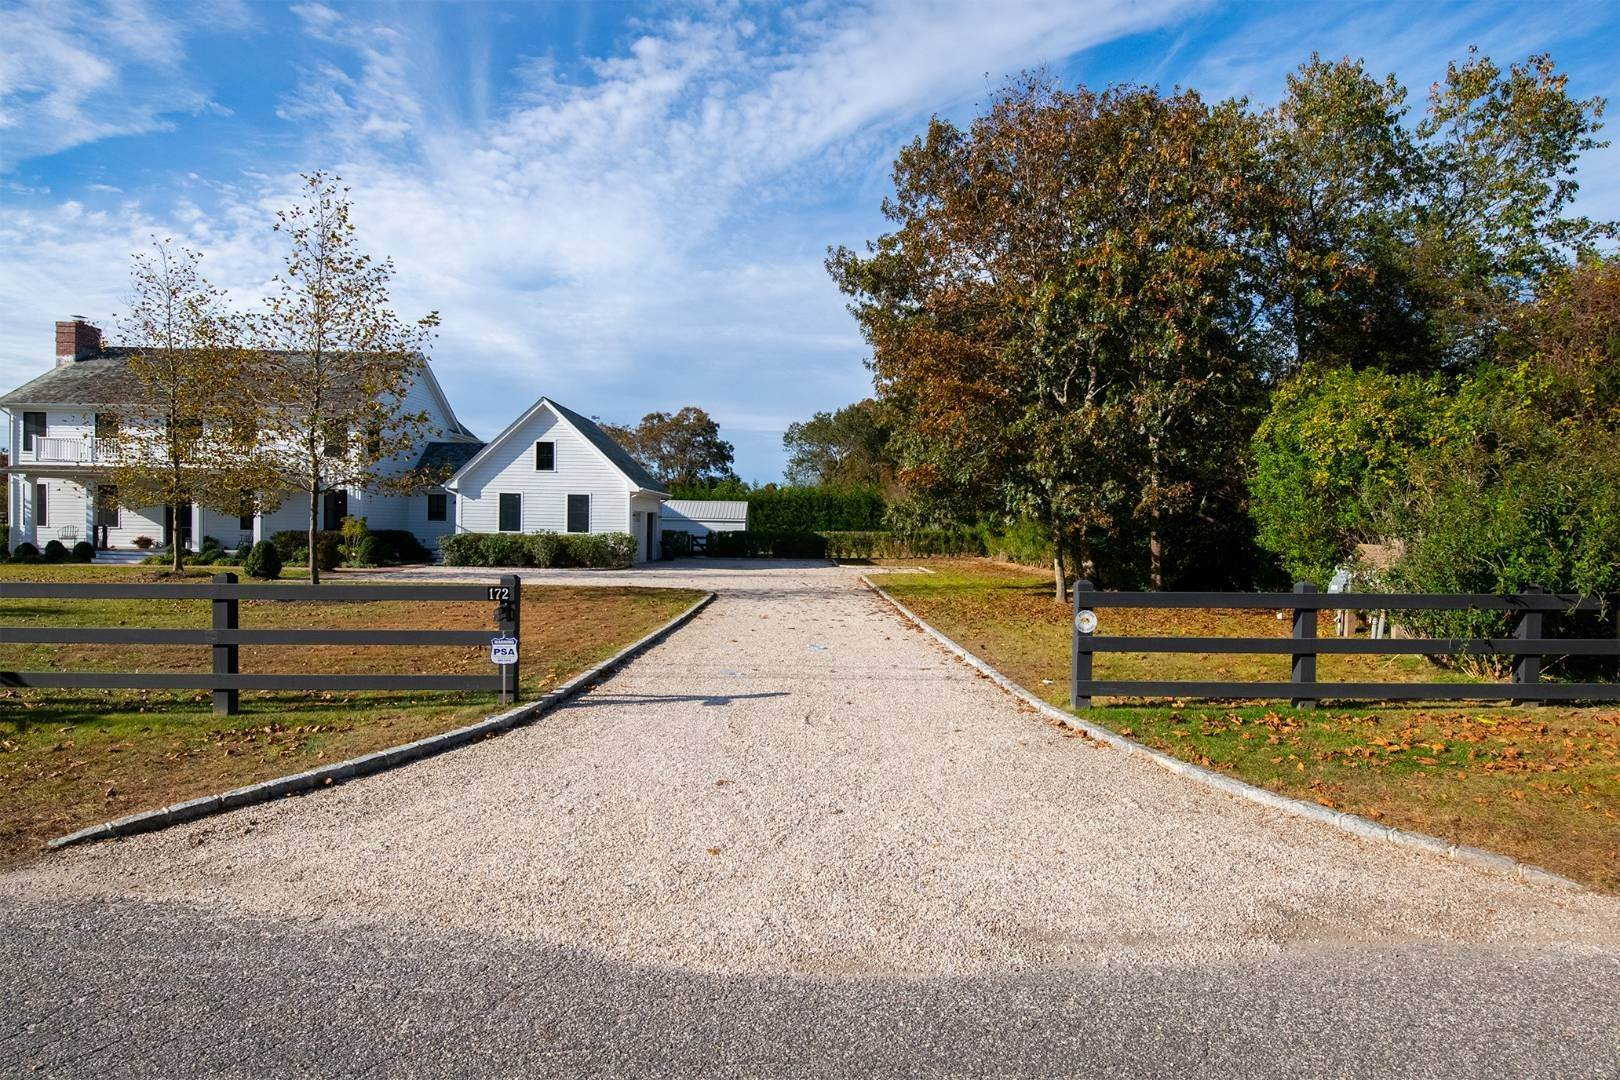 22. Single Family Home at Sagaponack Horse Farm Views 172 Narrow Lane East, Sagaponack Village, NY 11962